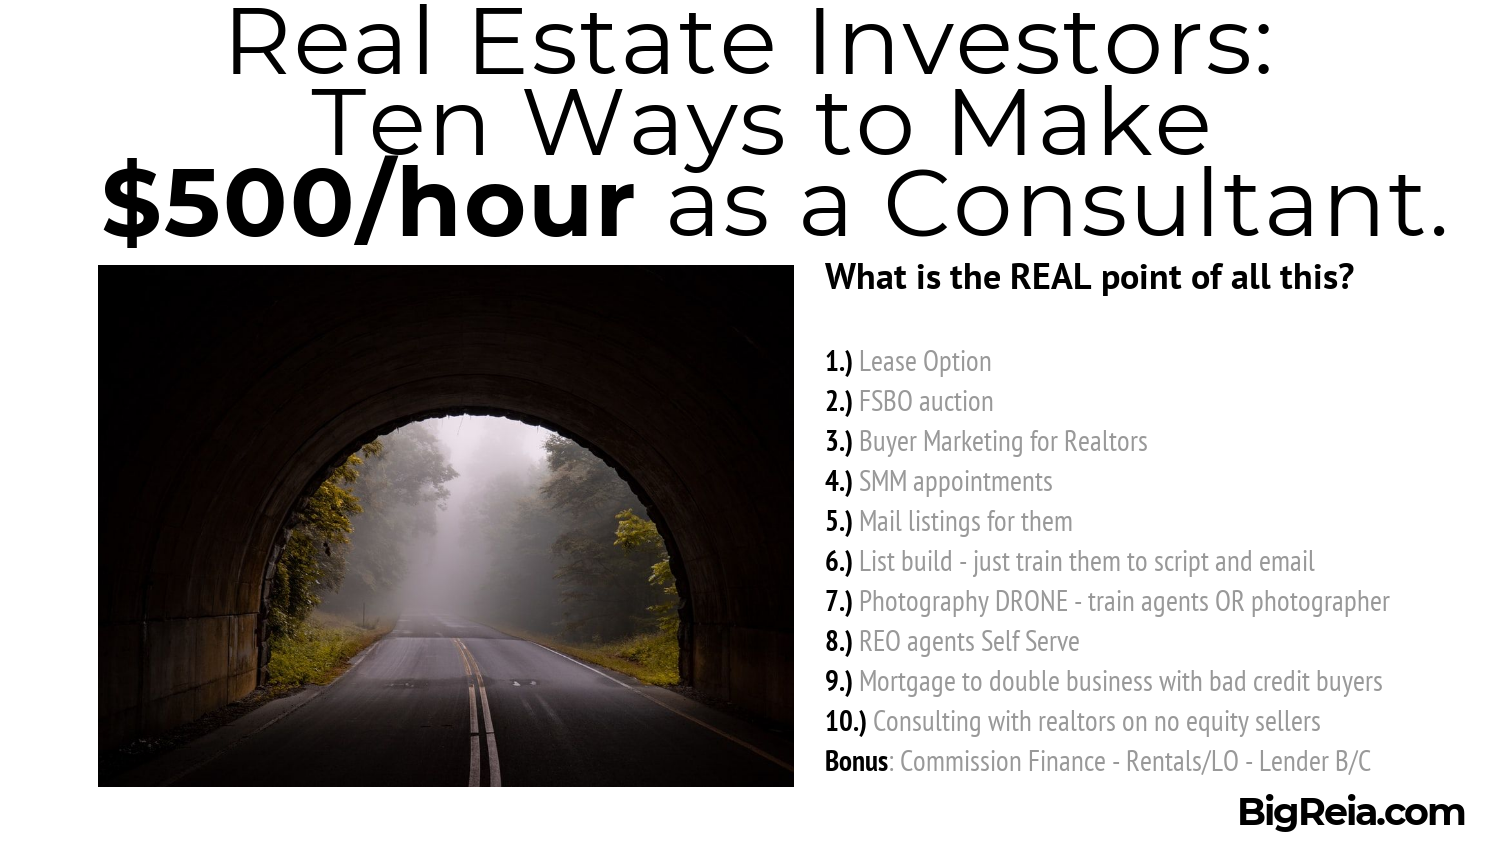 10 ways to make 500/hour as a real estate consultant